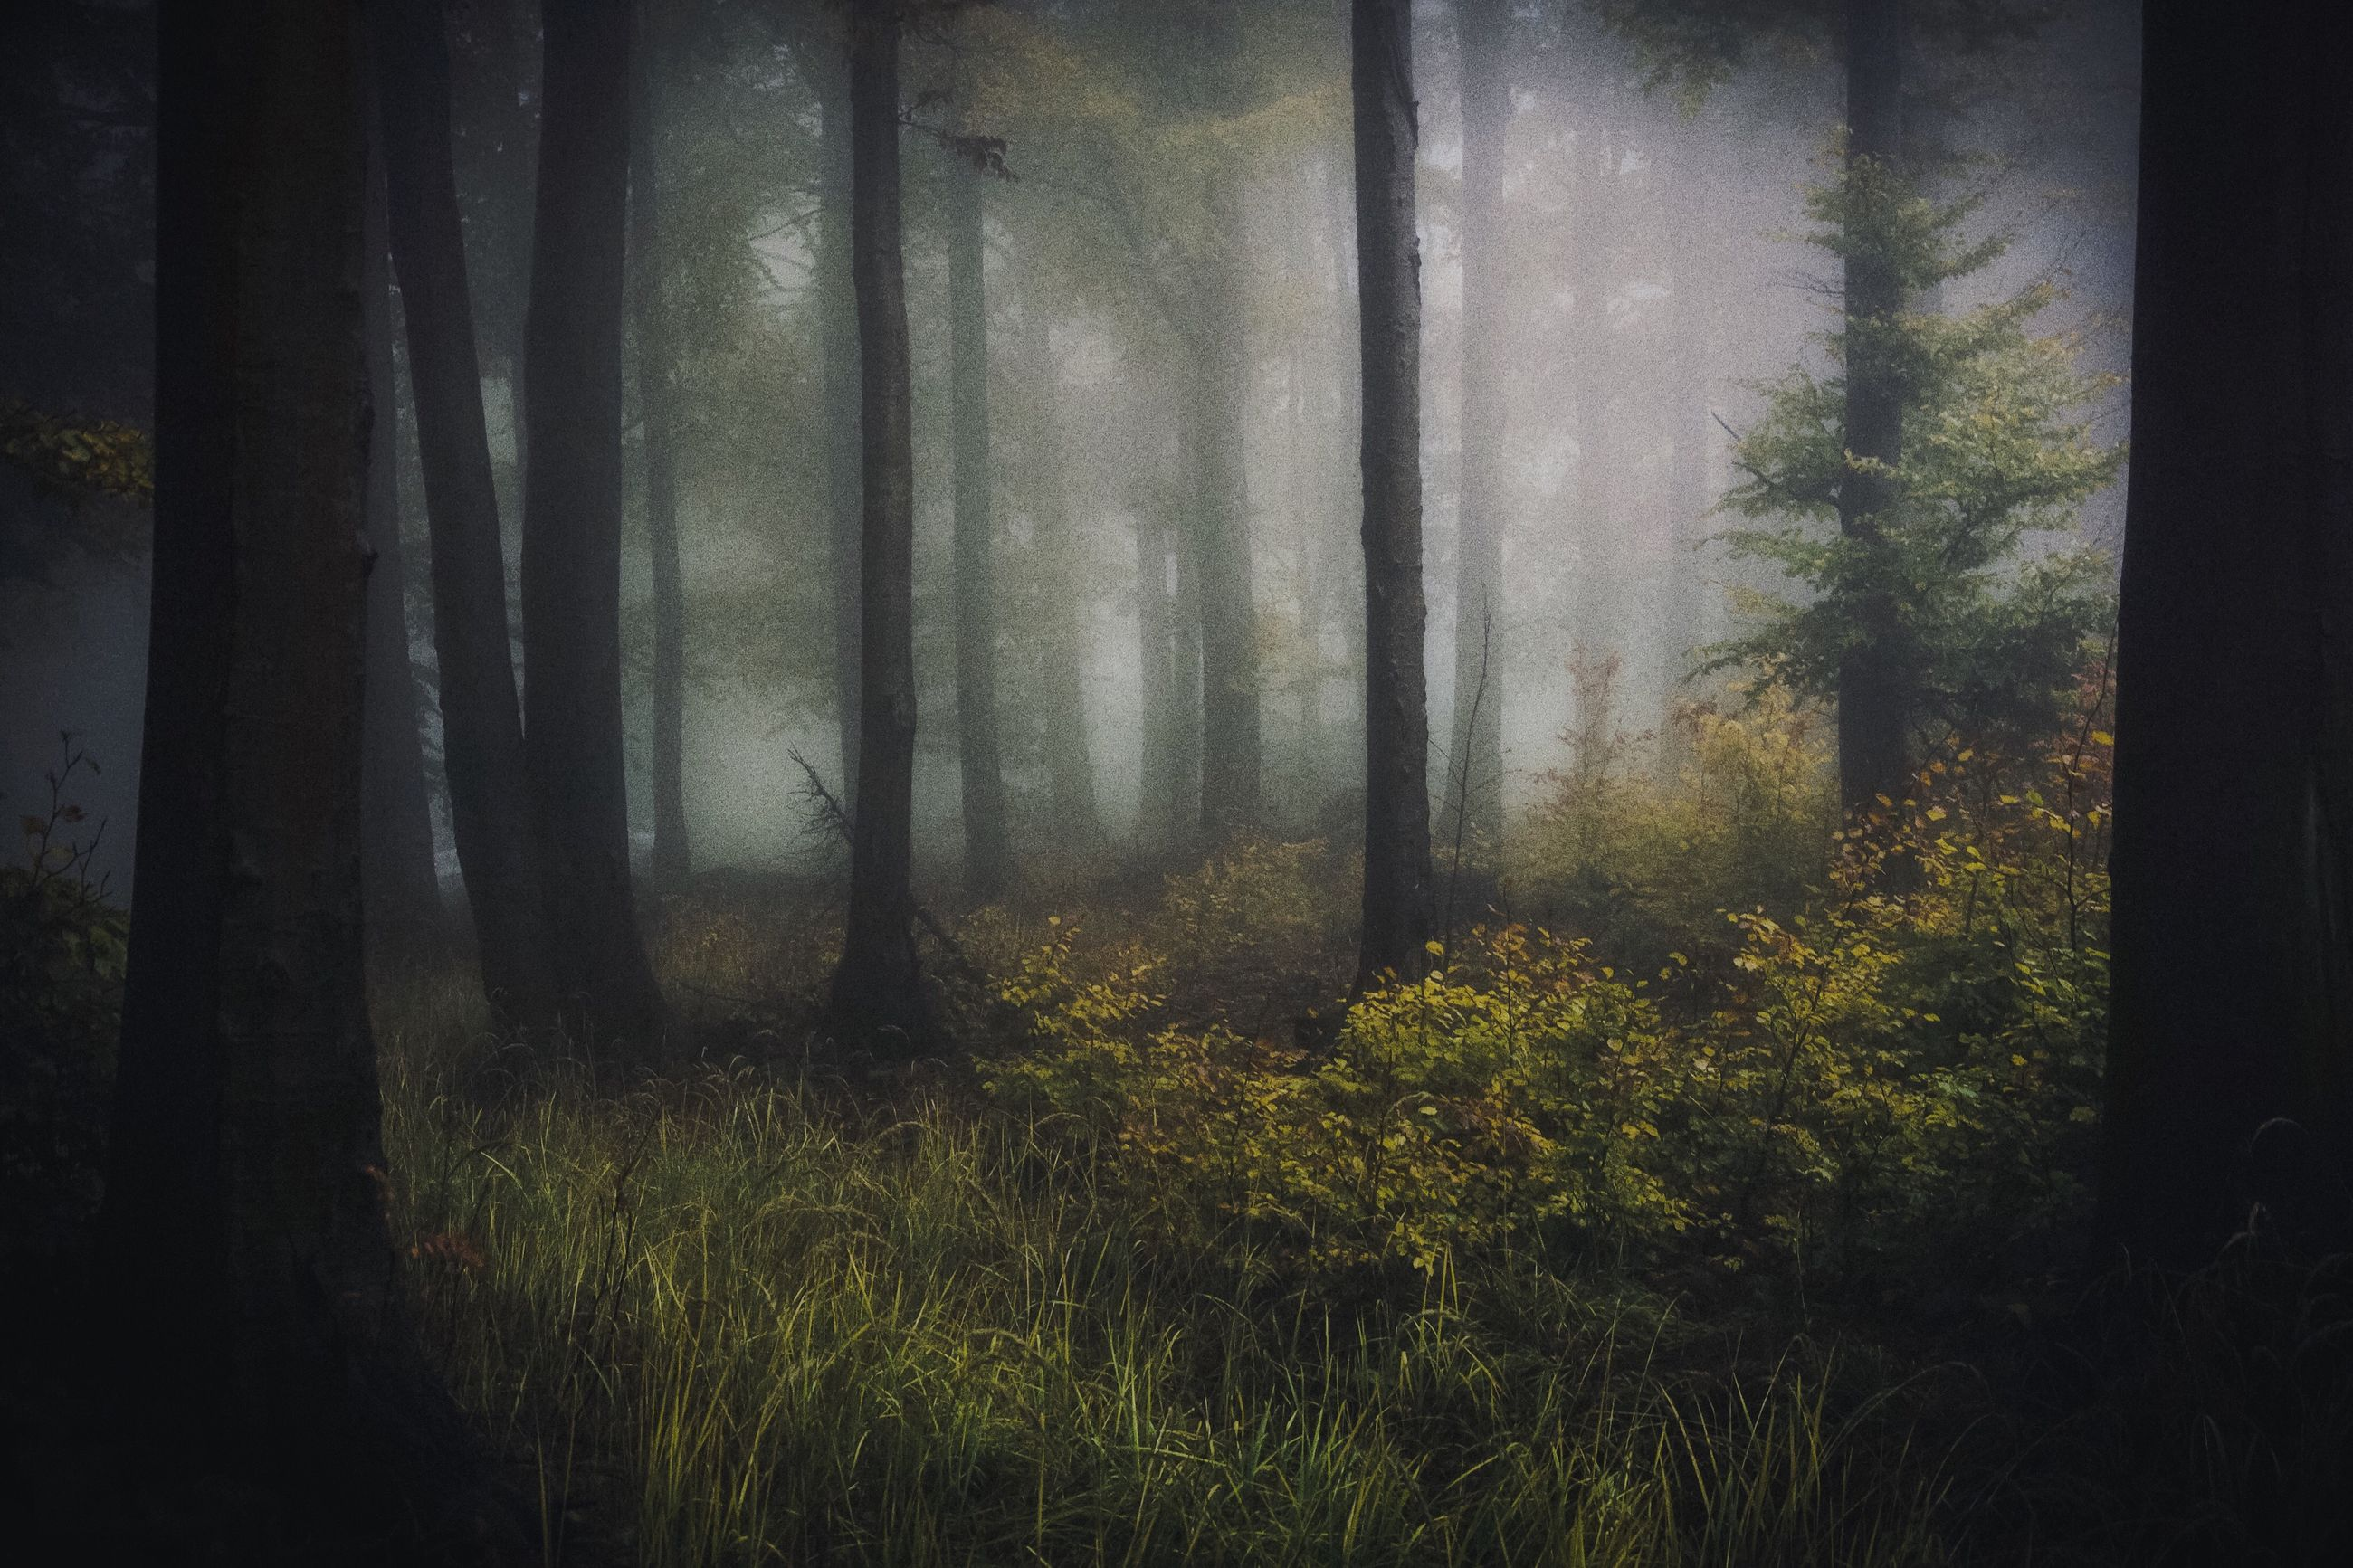 forest, tree, tranquility, tranquil scene, tree trunk, growth, plant, fog, nature, beauty in nature, woodland, scenics, foggy, non-urban scene, day, outdoors, solitude, mist, green color, wilderness, woods, bright, no people, rays, remote, hazy